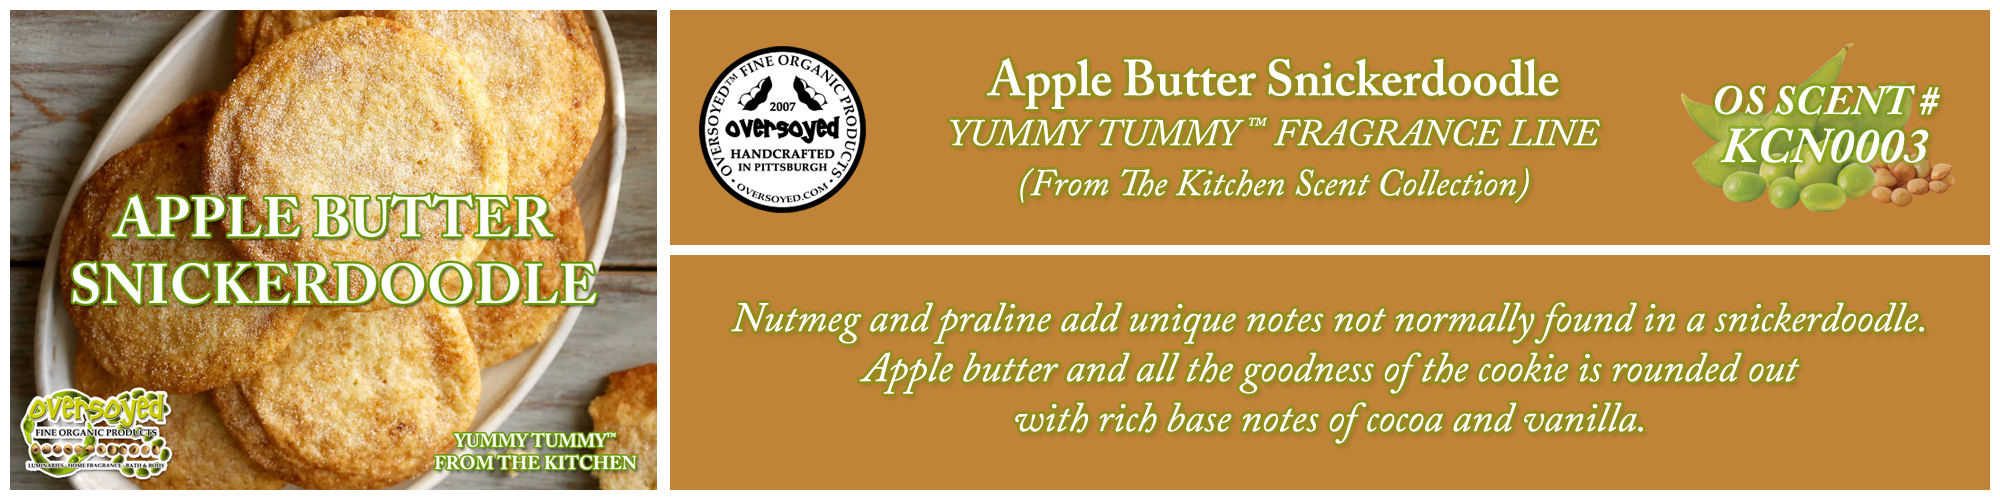 Apple Butter Snickerdoodle Handcrafted Products Collection